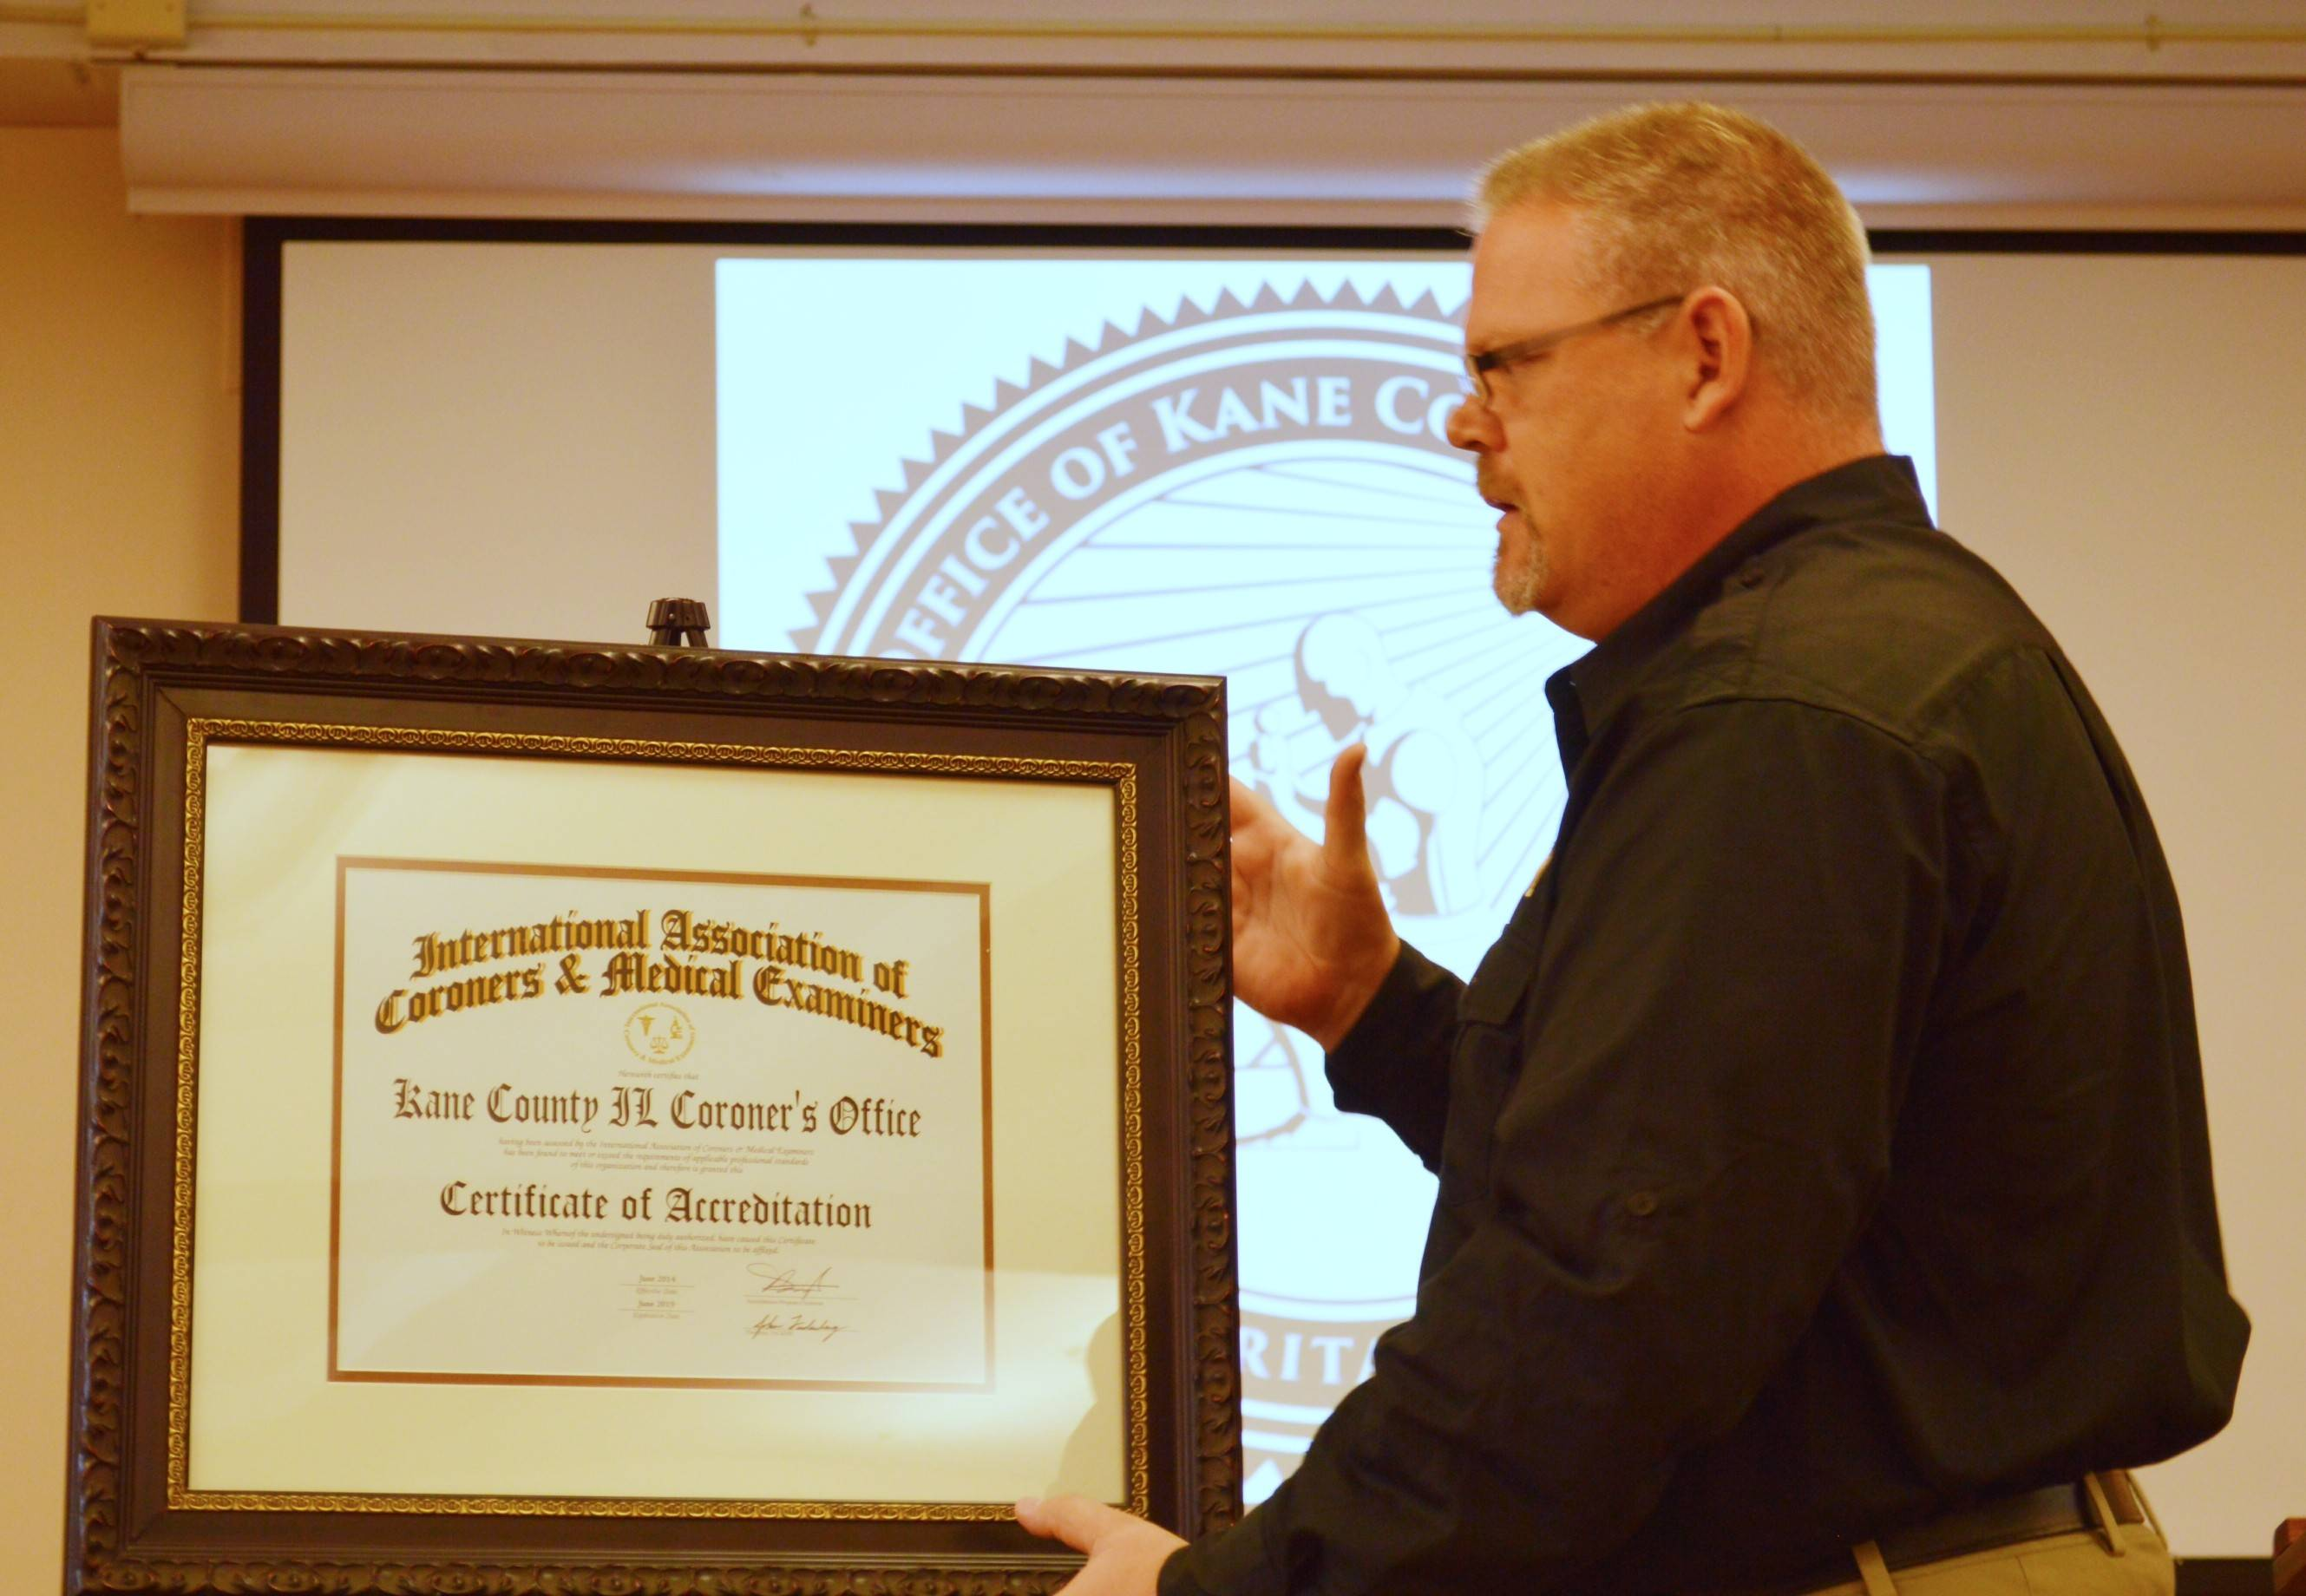 Kane County Coroner Rob Russell announced his office is the first in Illinois to receive national accreditation.